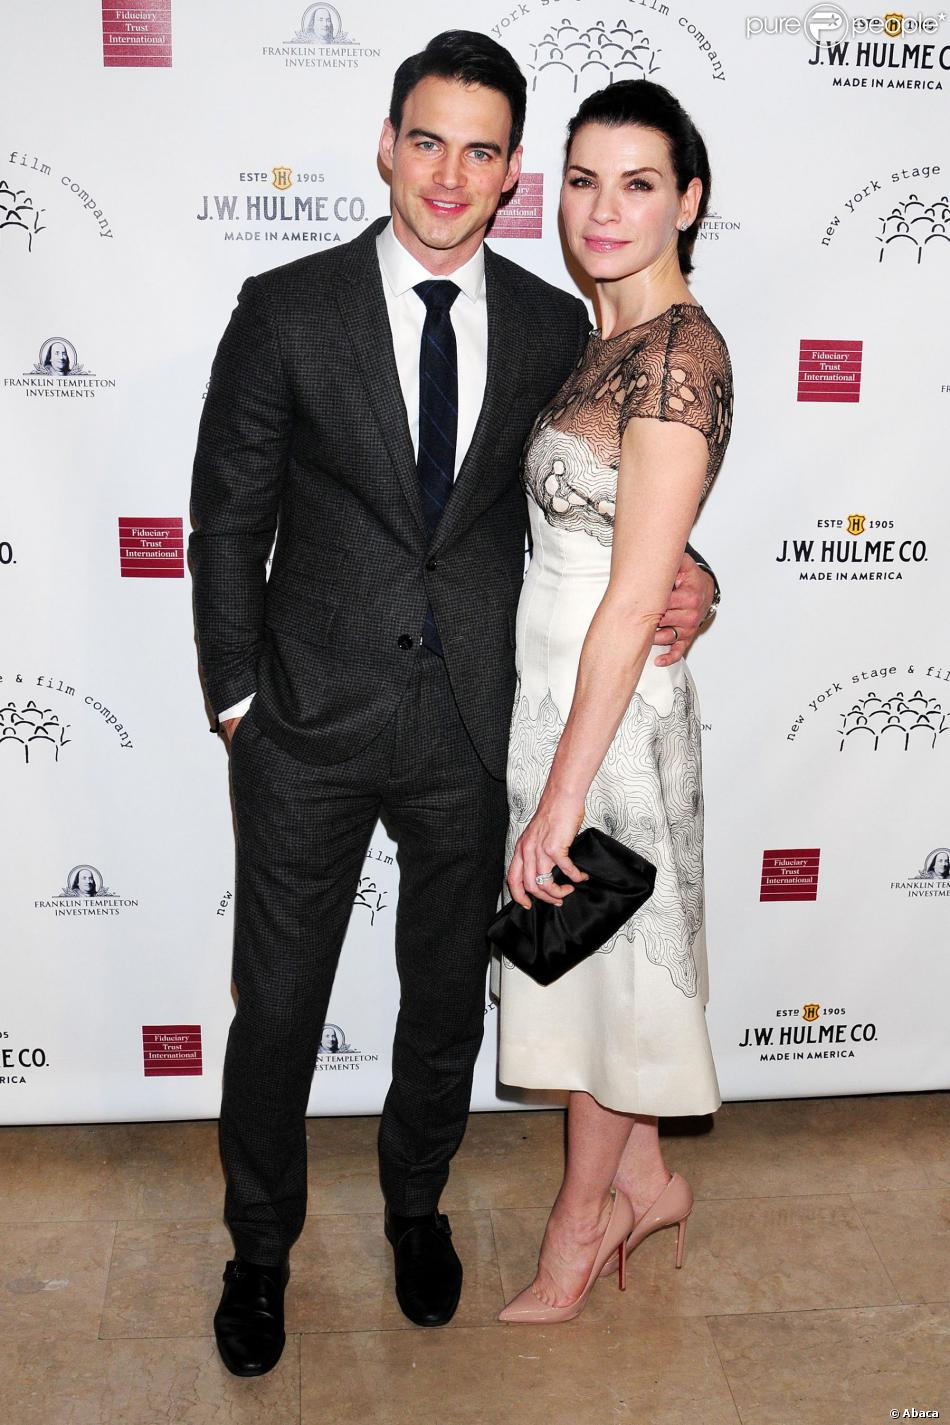 Julianna Margulies et son mari Keith Lieberthal lors du gala New York Stage and Film à l'hôtel Plaza de New York le 17 novembre 2013